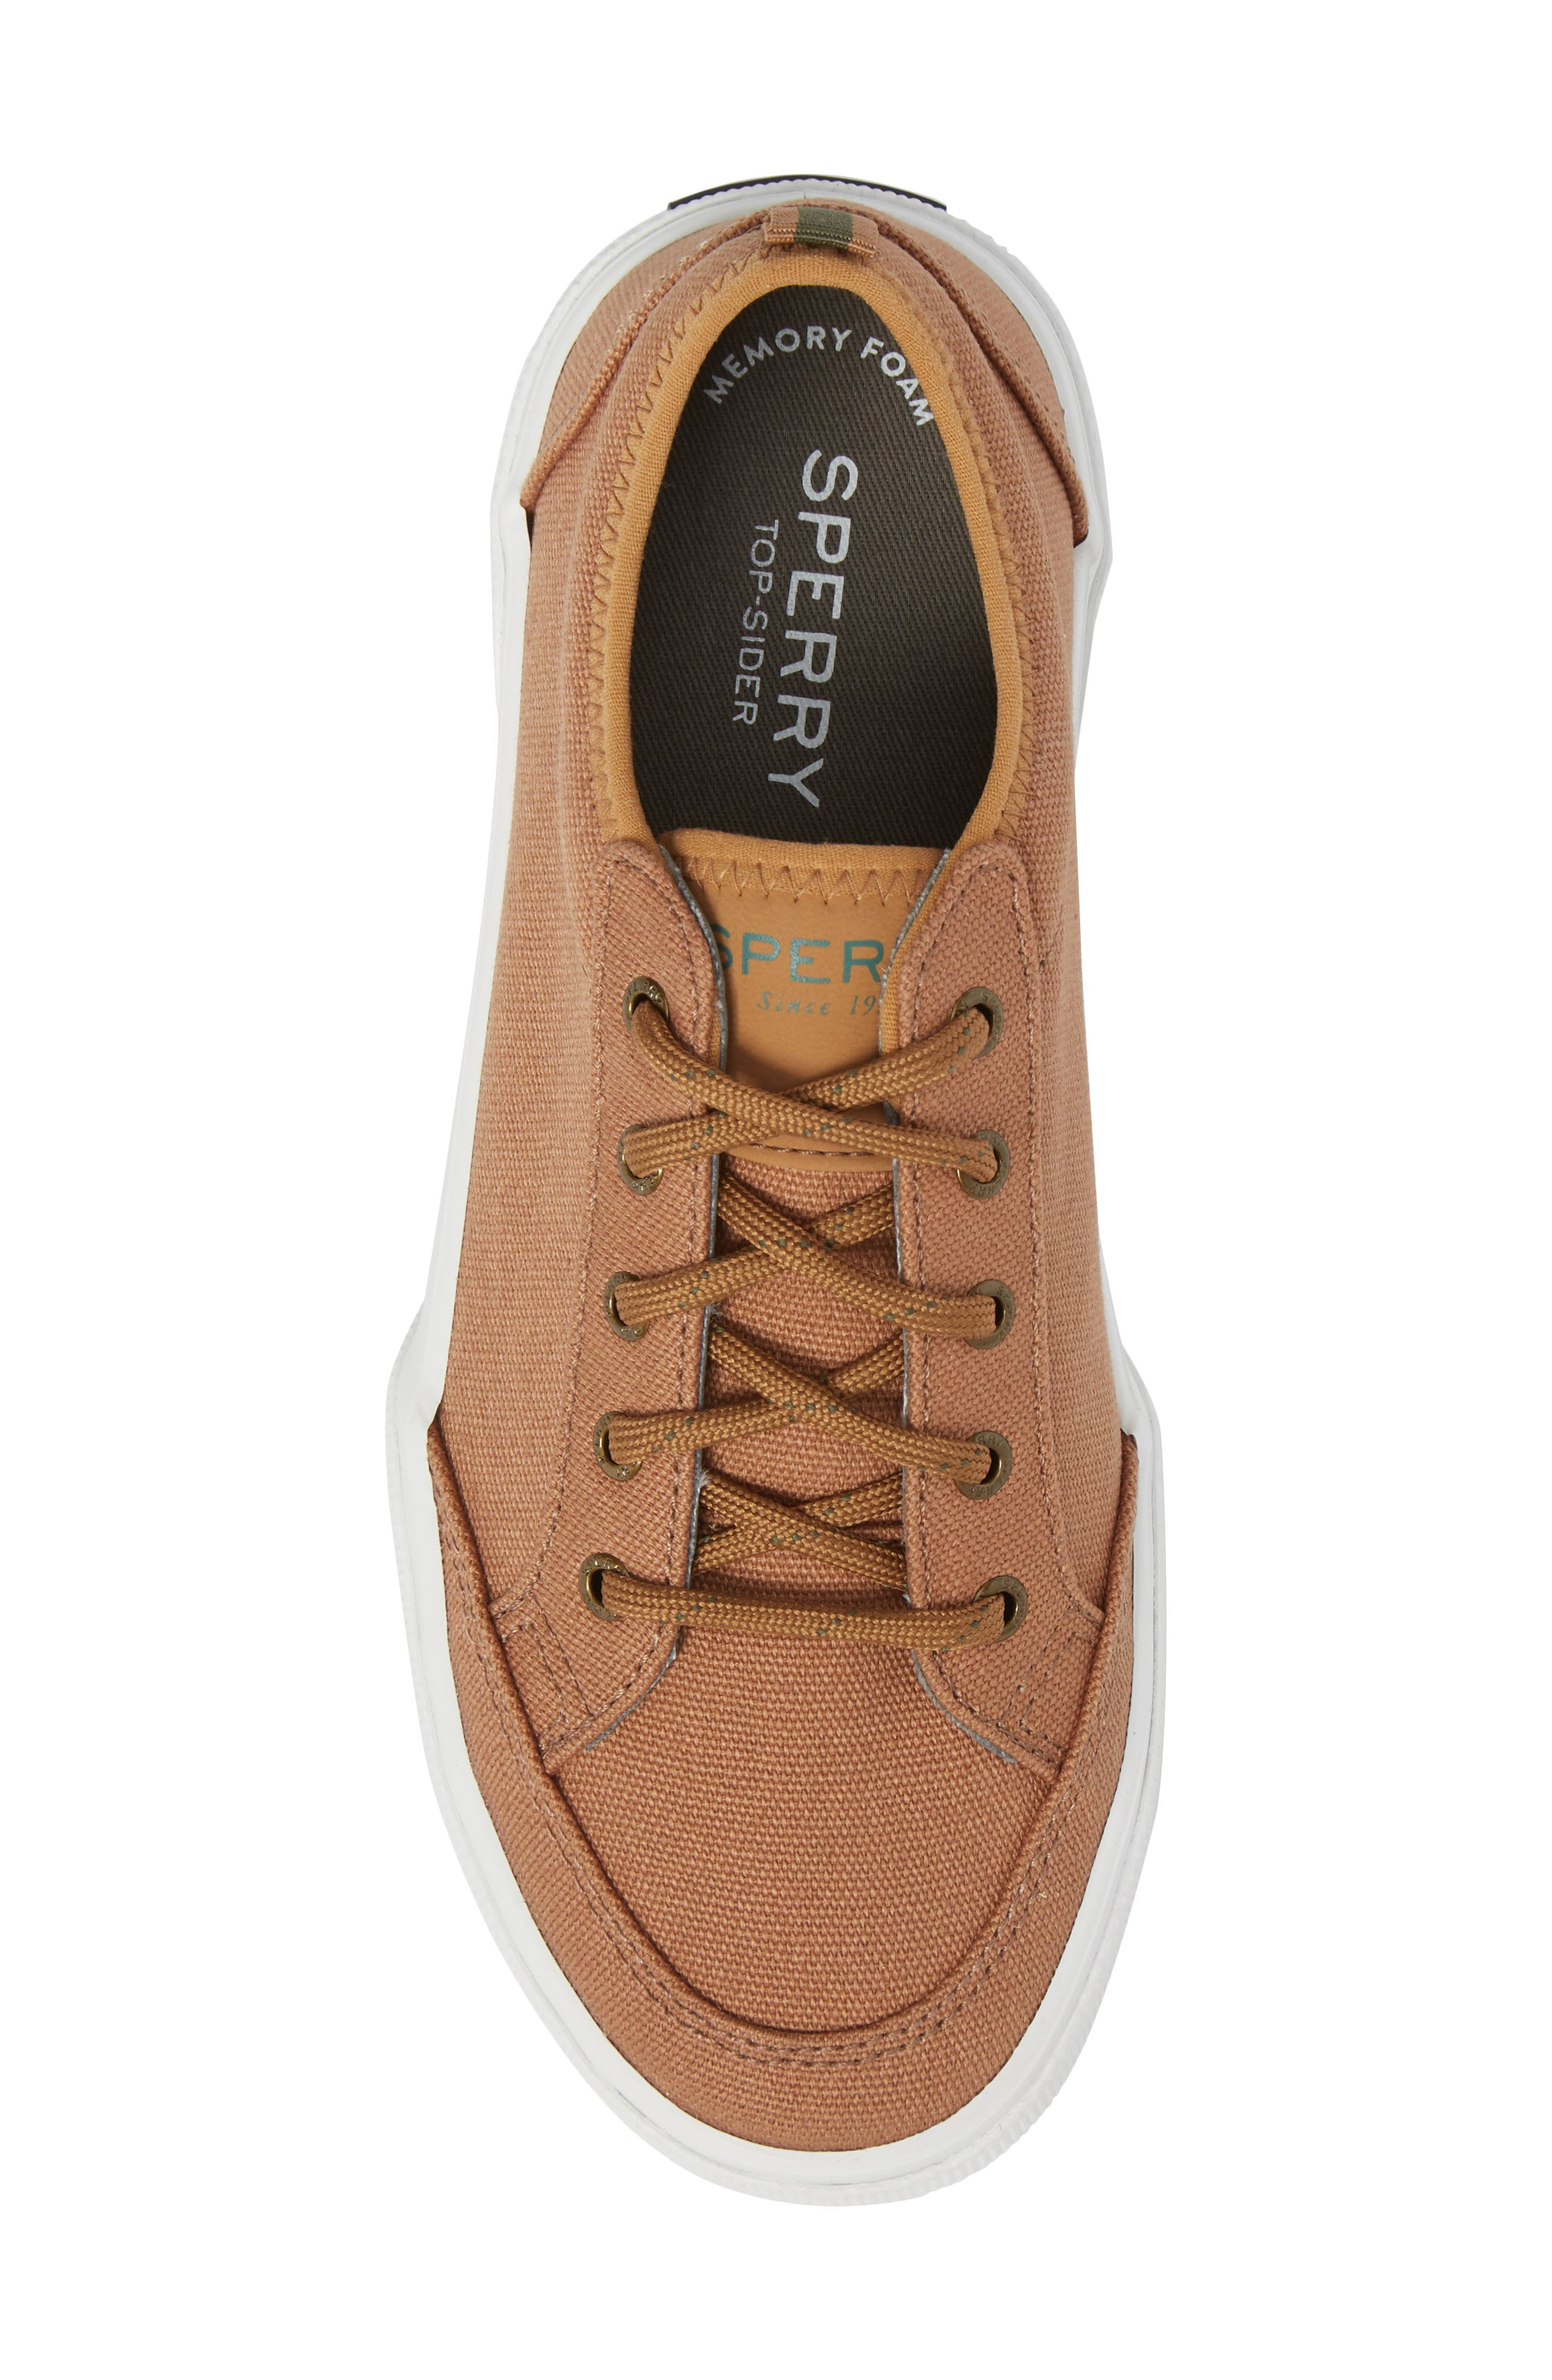 Sperry Deckfin Sneaker,                             Alternate thumbnail 5, color,                             200